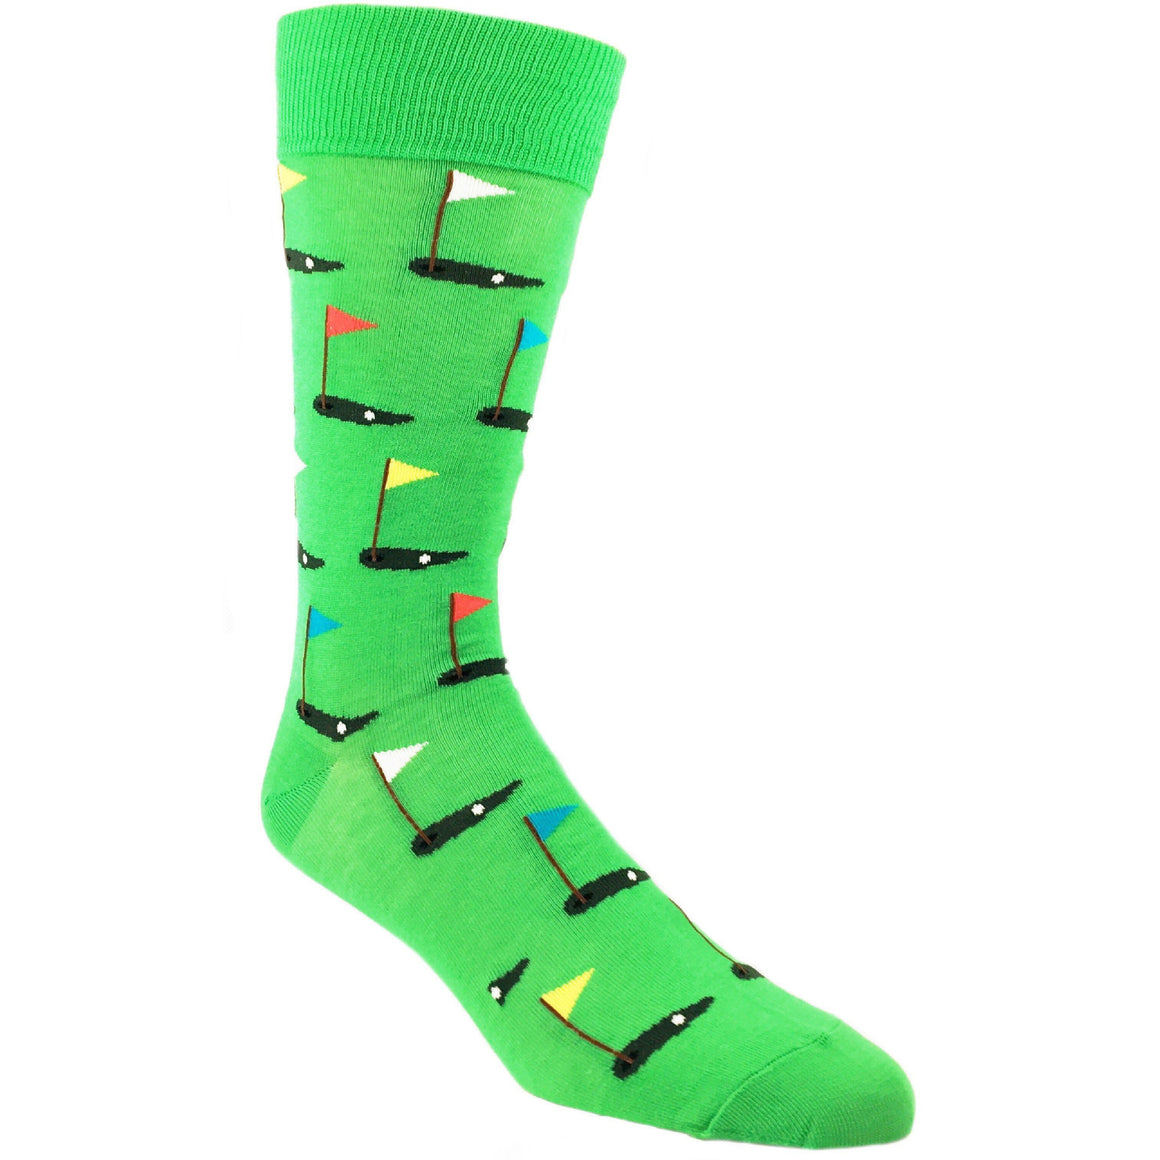 Golf Socks in Green by Hot Sox - The Sock Spot